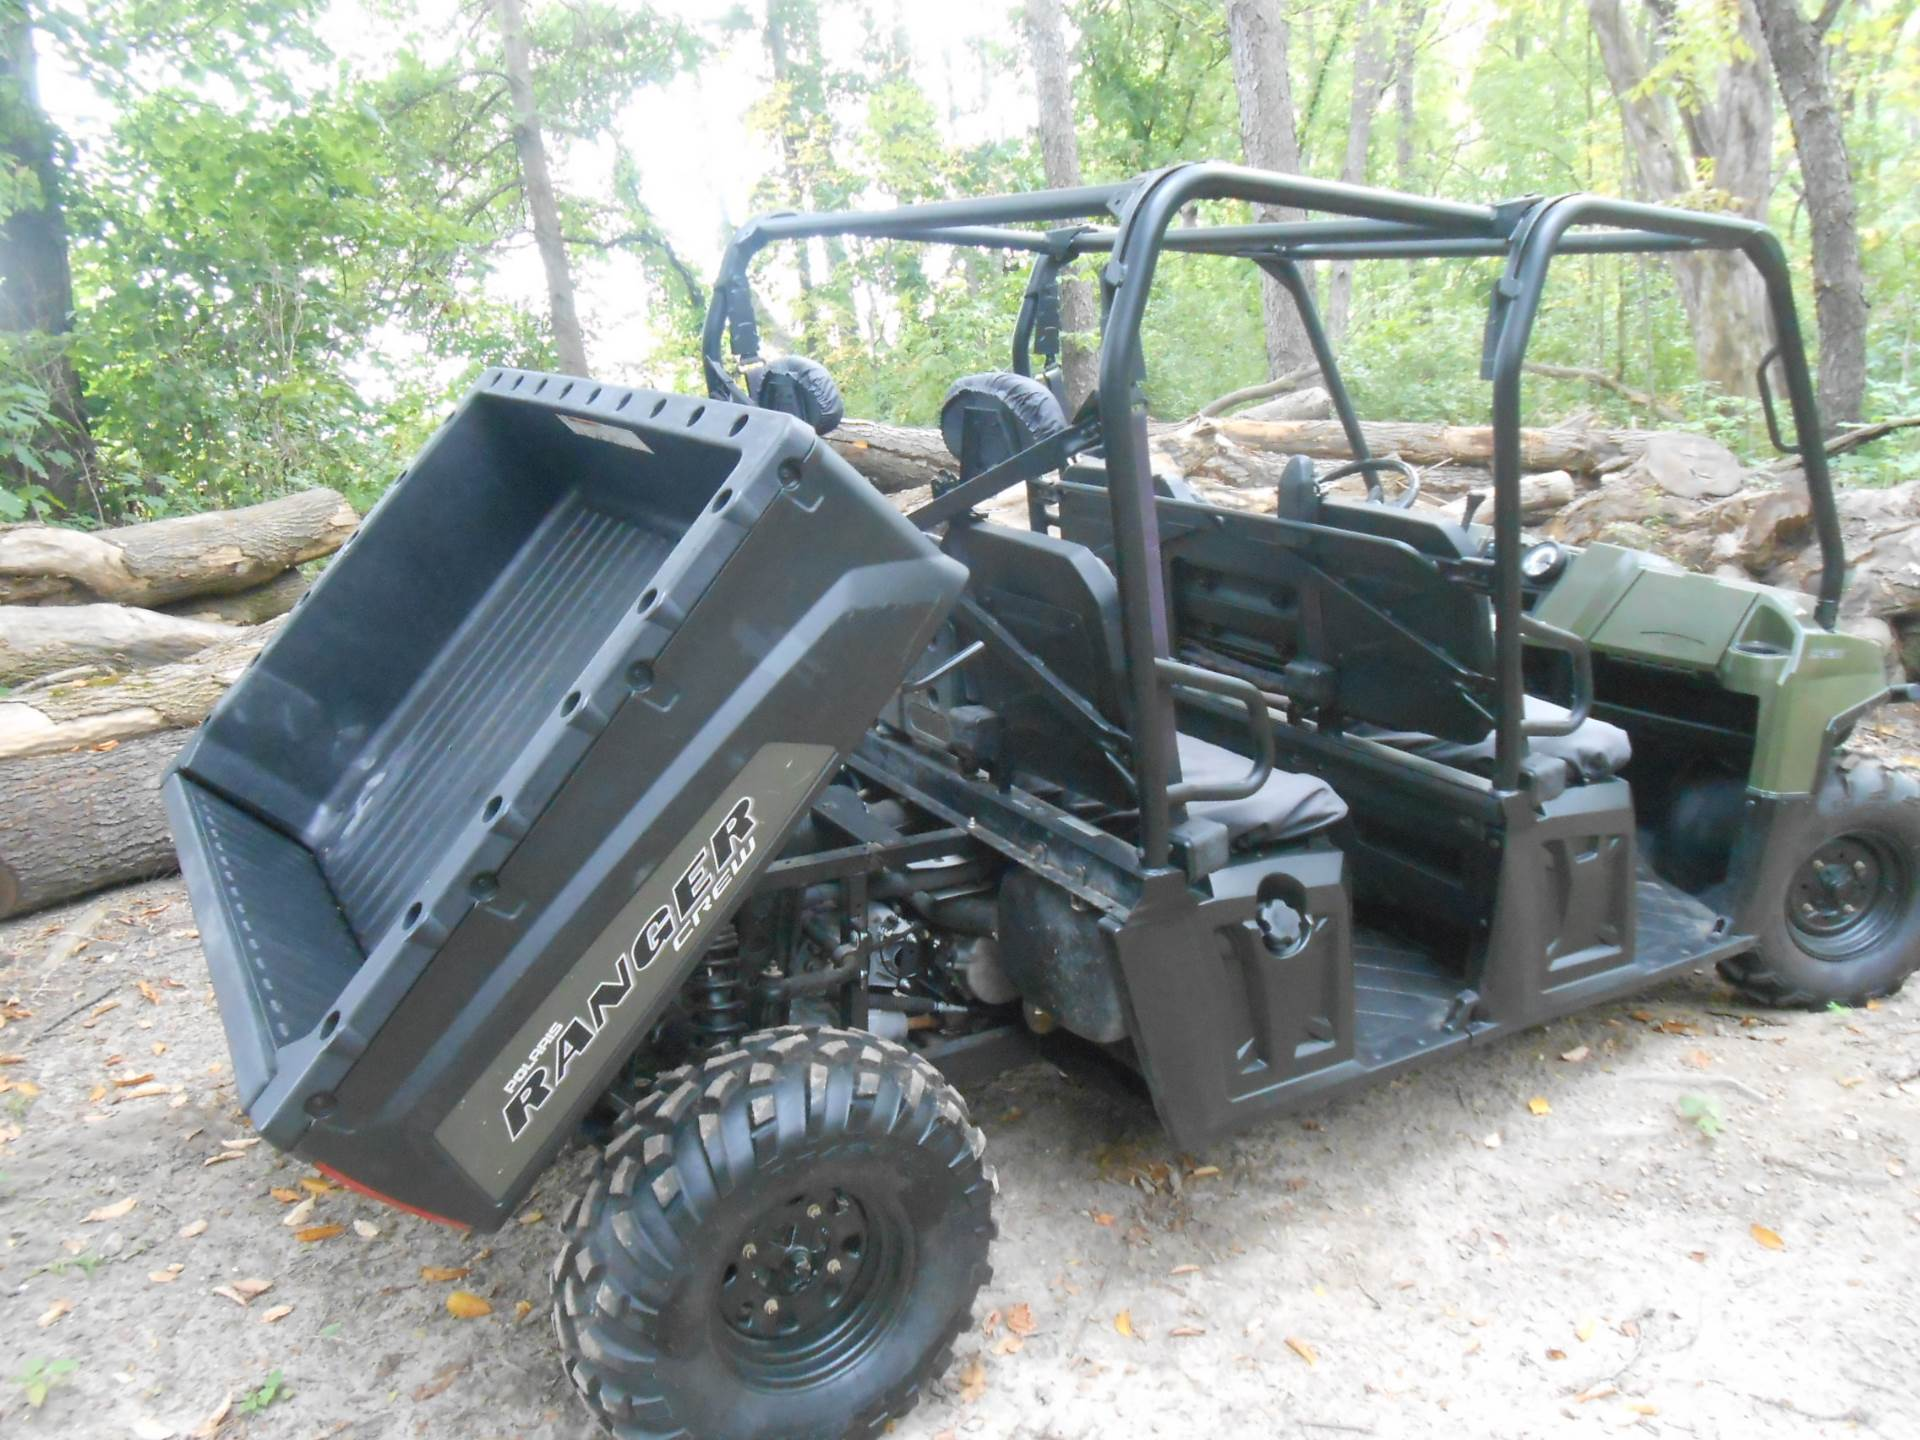 2014 Polaris Ranger Crew® 800 EFI in Howell, Michigan - Photo 17